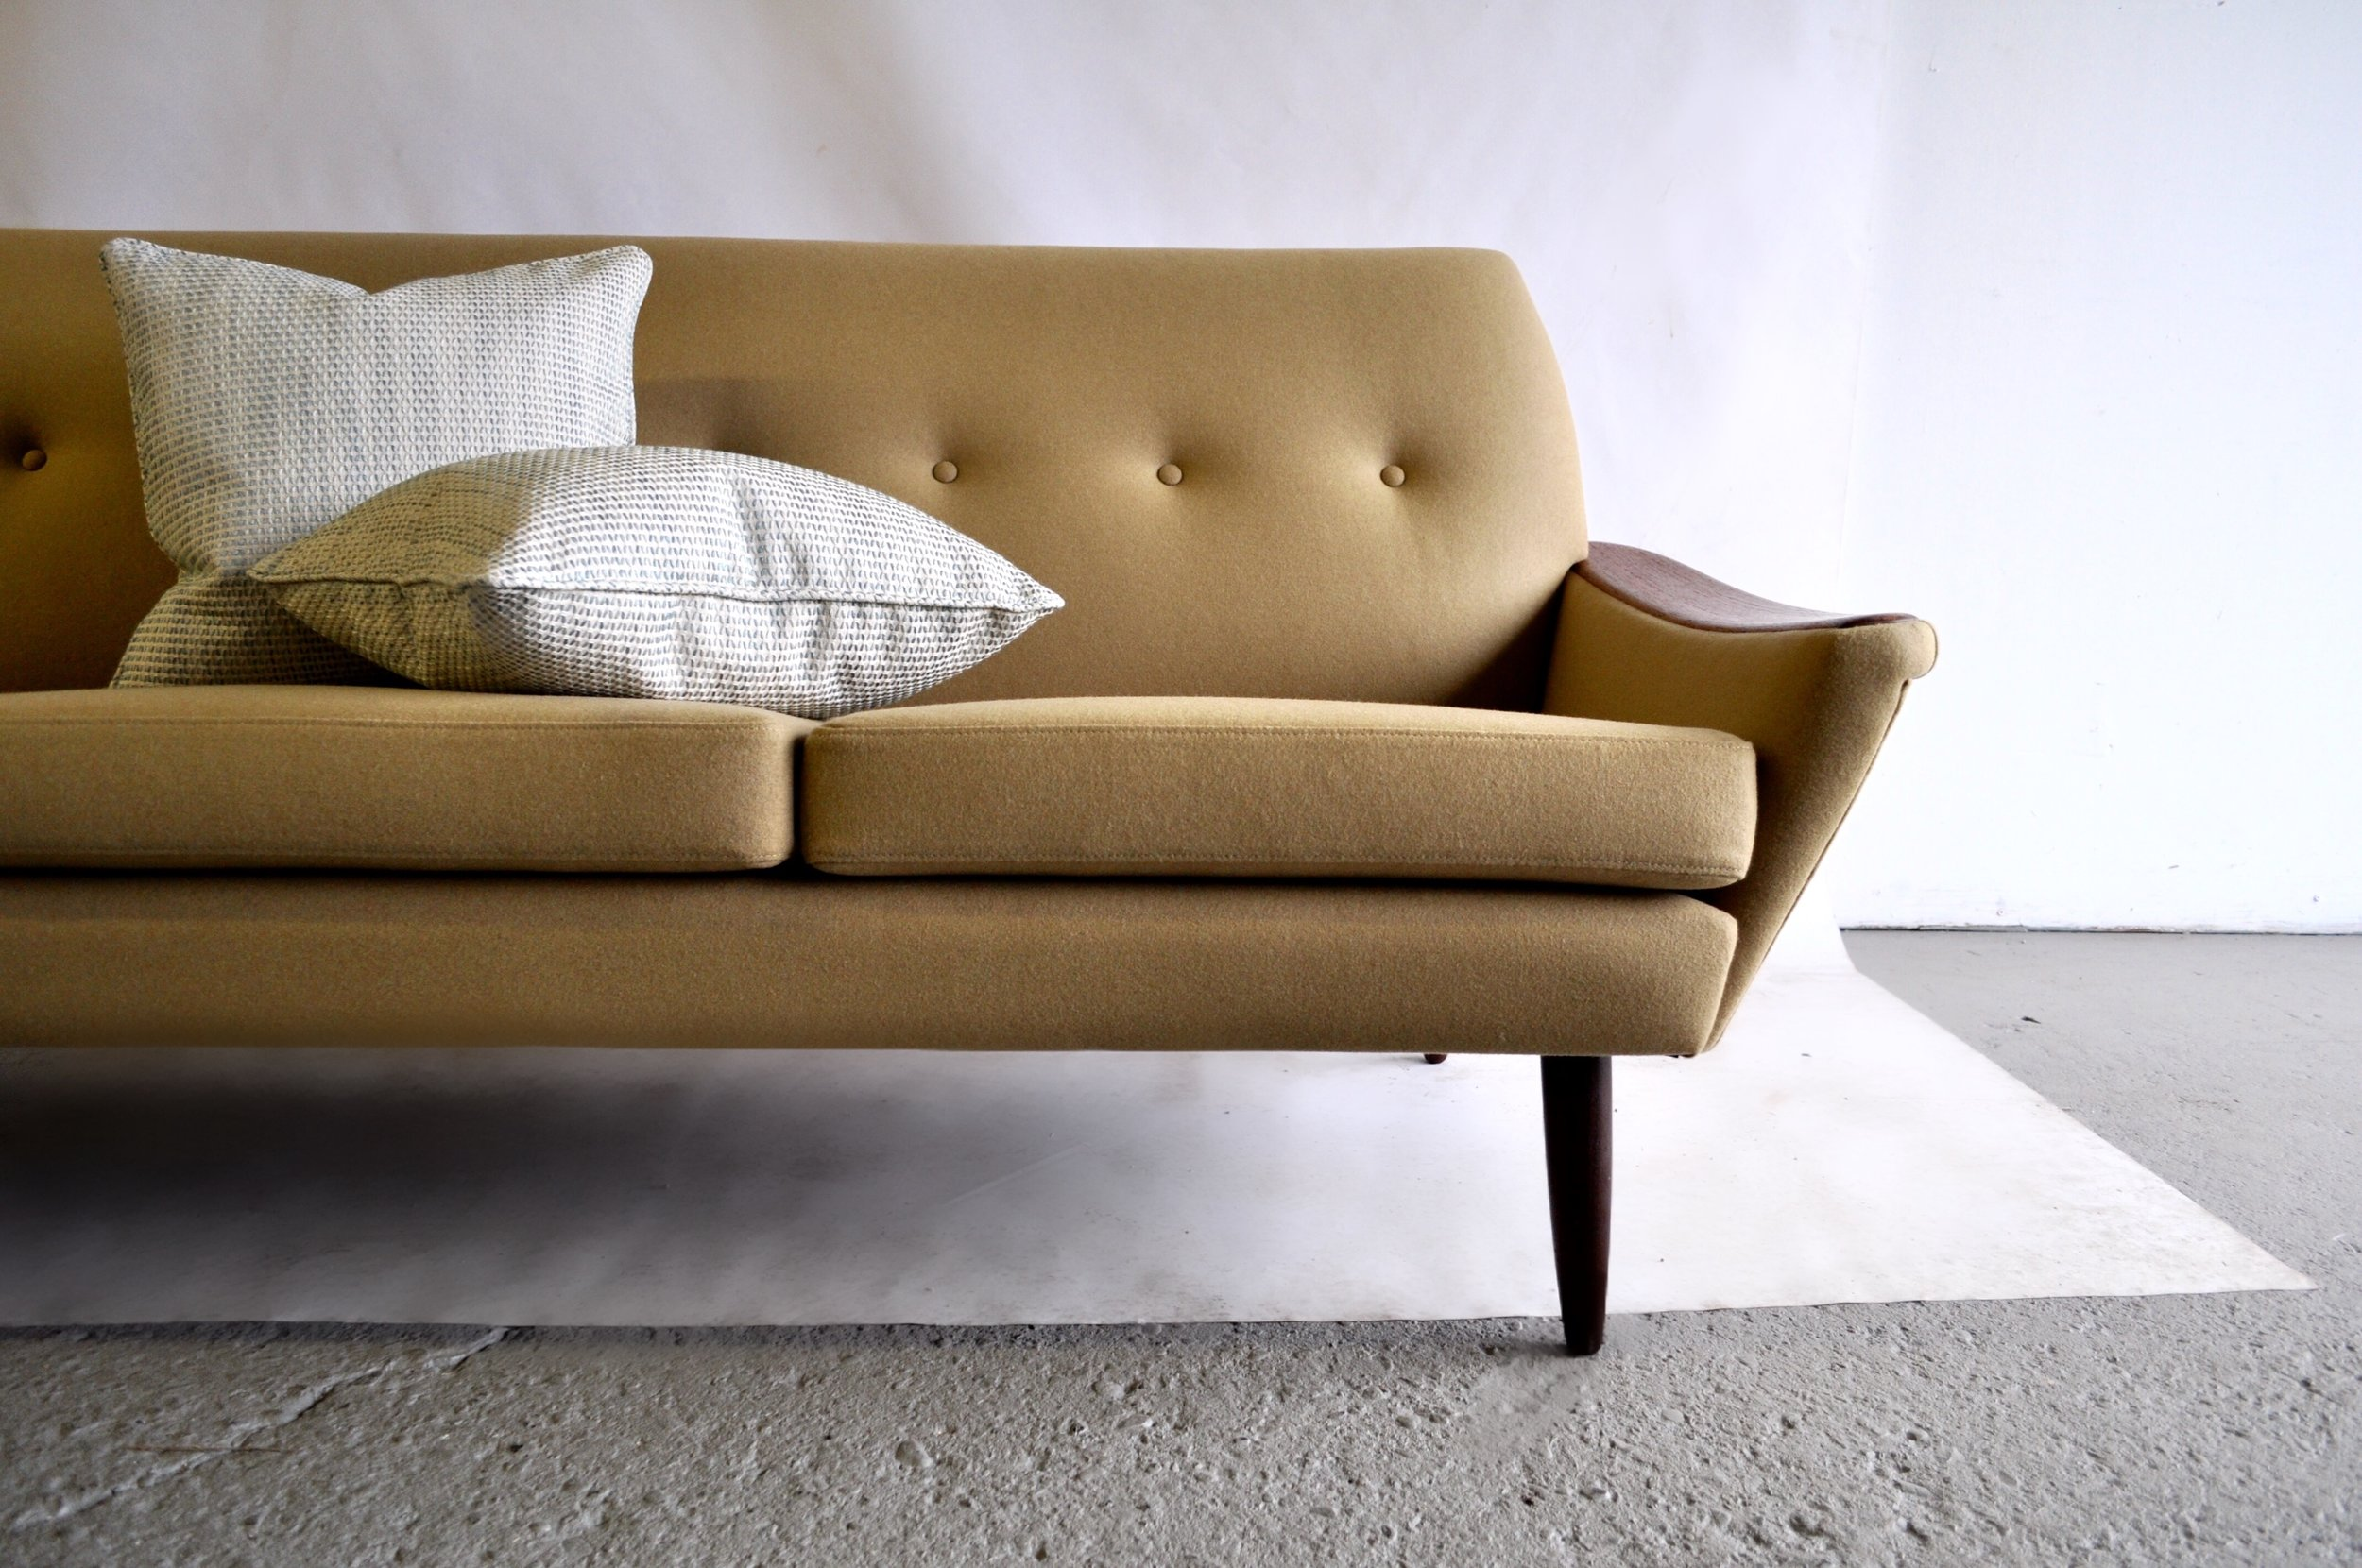 Mid Century Modern sofa, with topstitch detail and button tufting.